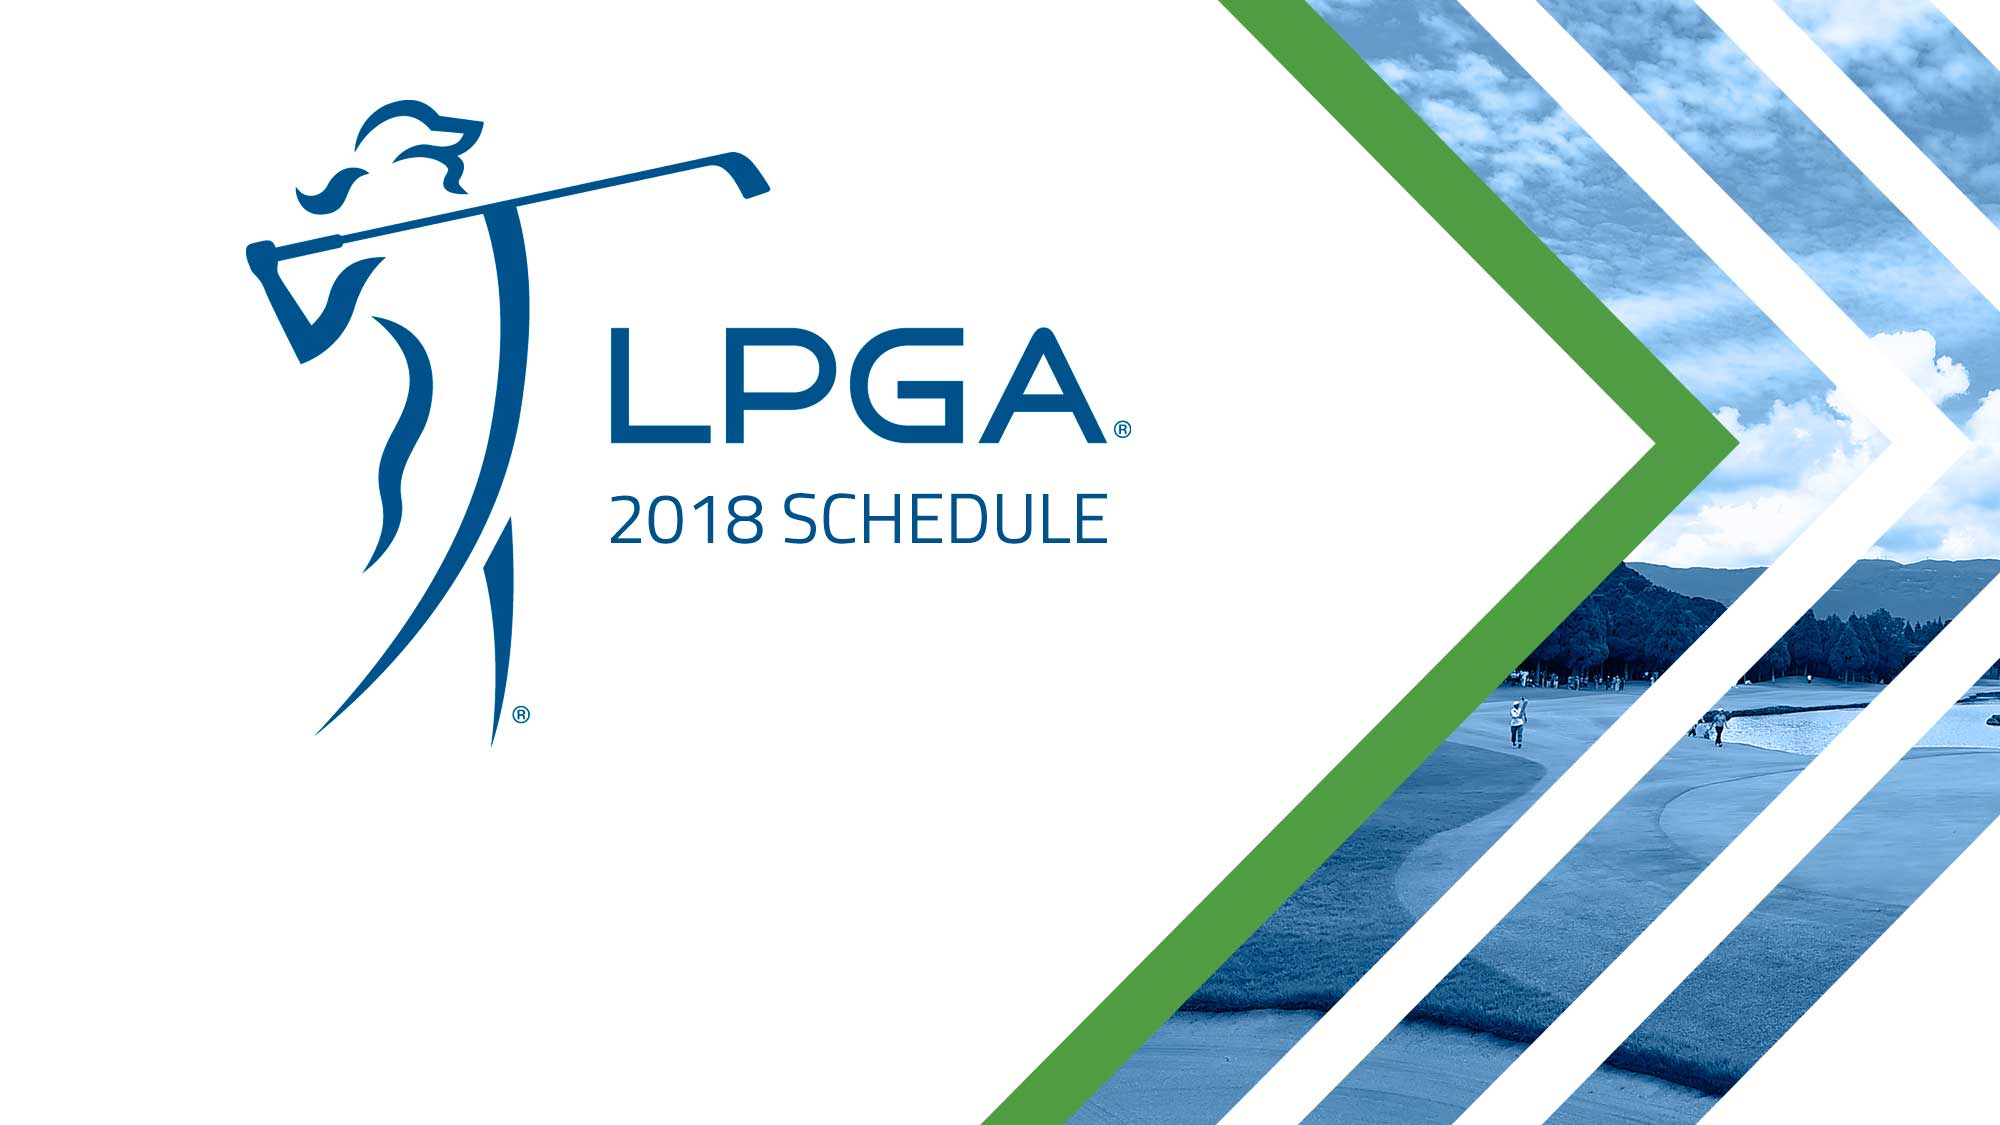 2018-lpga-schedule-announcement-2000x1125.jpg